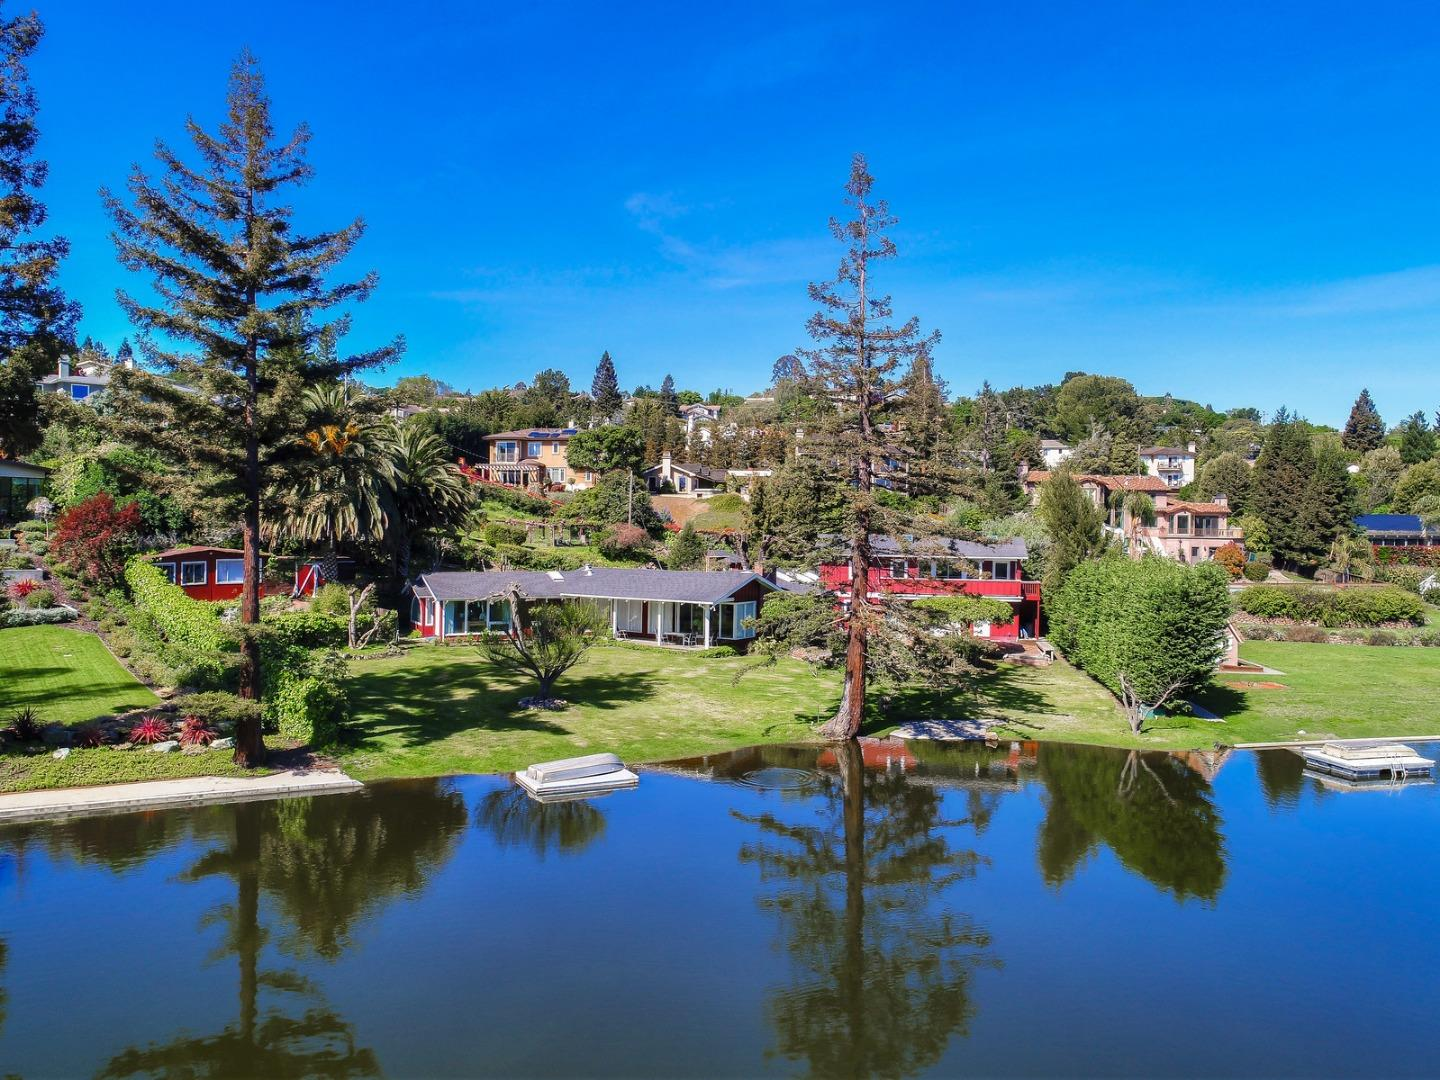 This property is a rare opportunity in the Bay Area.  This single level Lake front home on the privately owned Lynda Lake is truly special.  The location provides one of the most tranquil settings to live in the bay area.  Sitting on a 41,921 square foot lot this property is one of the most desirable lots of the 11 original homes that rim the lake.  These homes of distinction on the Lake have been historically sought after.  With all the privacy and peacefulness of a home in the county you are only minutes from highway 280, shopping and schools. This special property is one you must see.  You won't find this type of property anywhere on the Peninsula! It is more than just a  home!